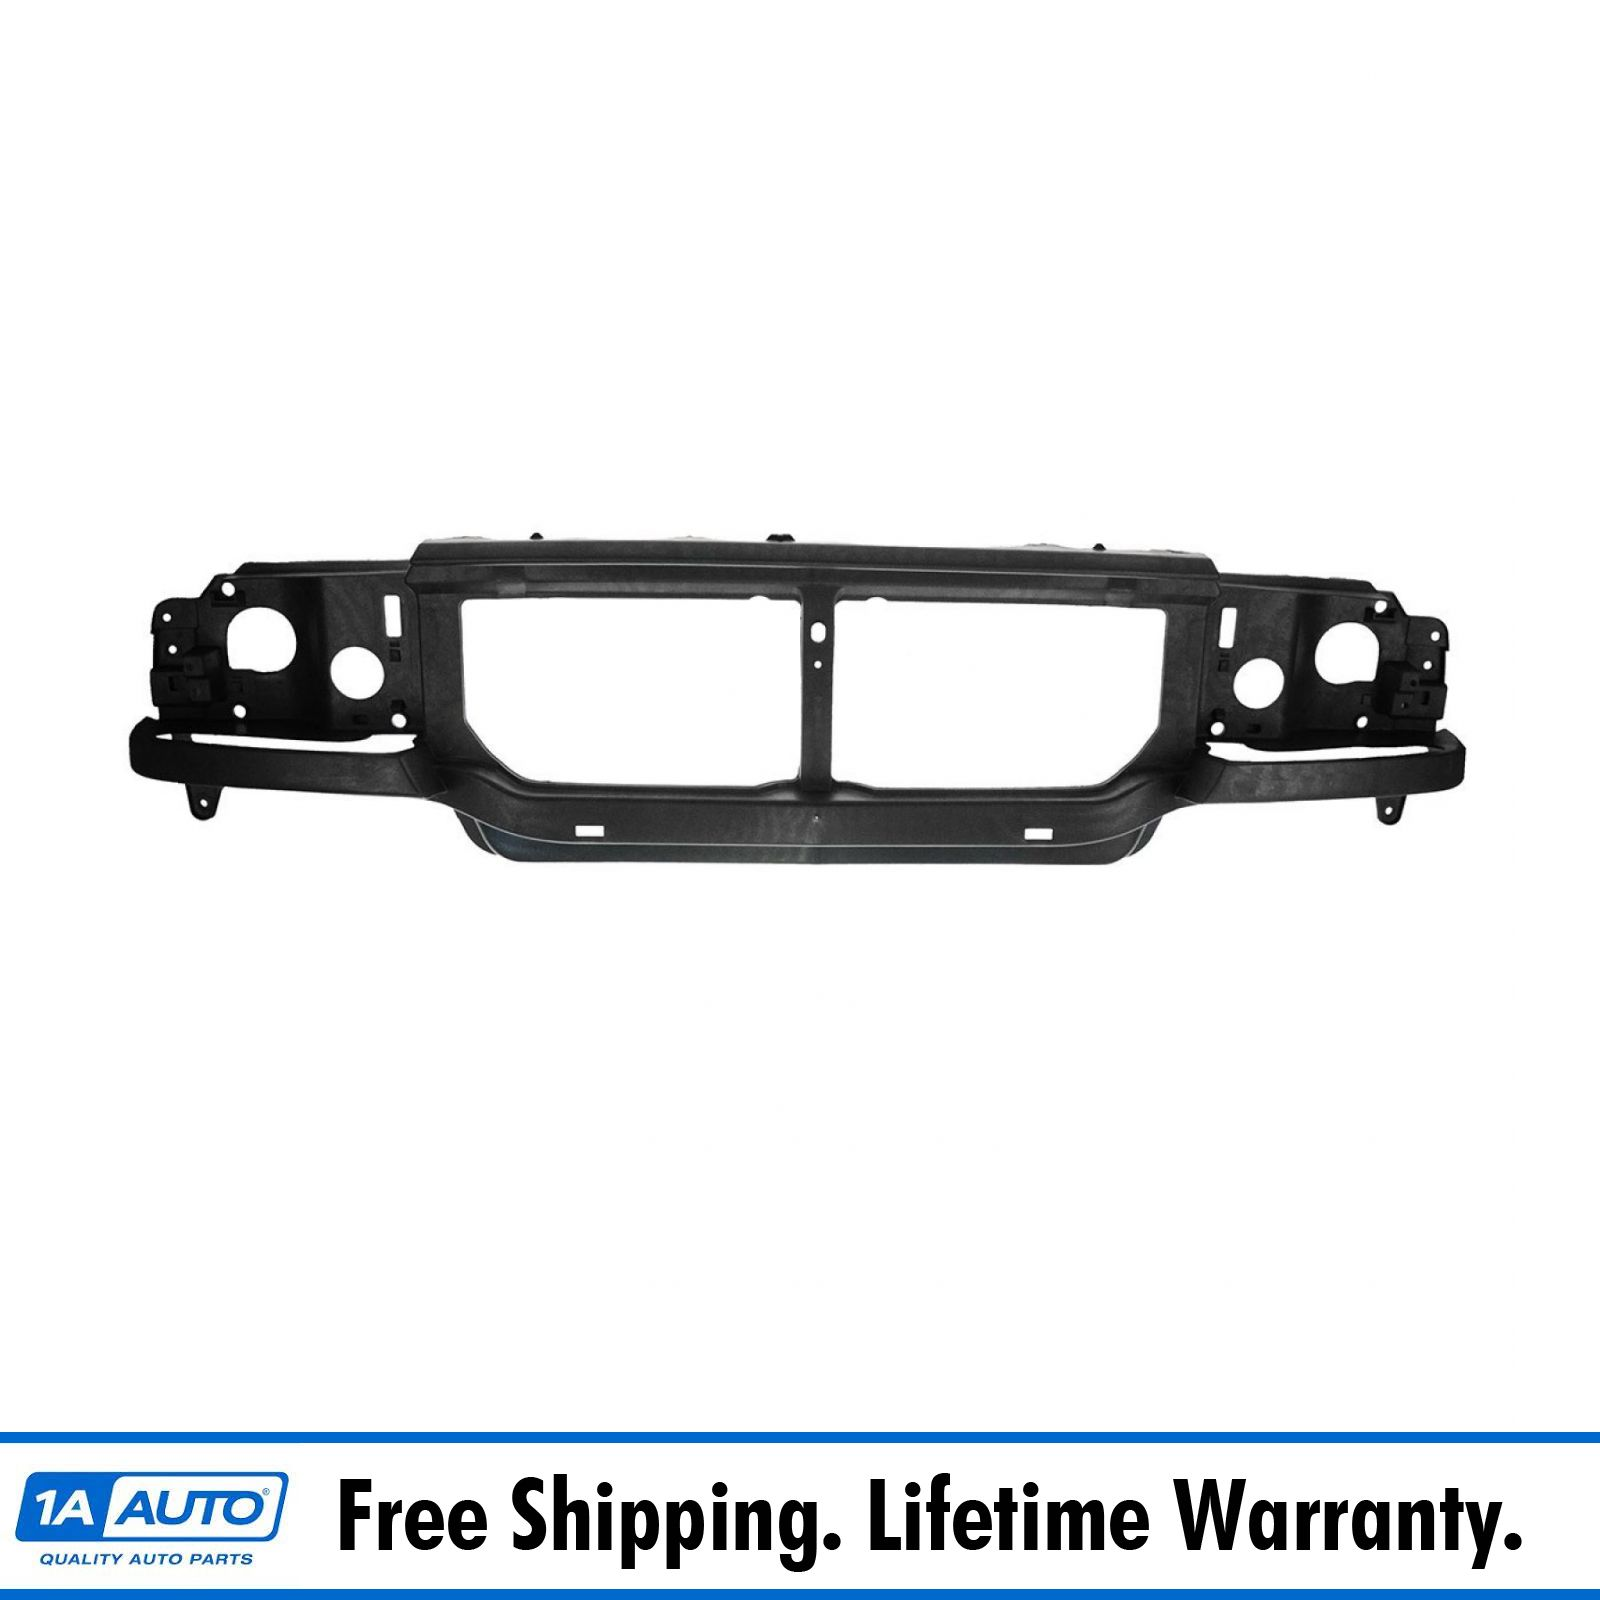 1A Auto Header Grille Opening Mounting Panel Frame NEW for 99-04 Ford Mustang